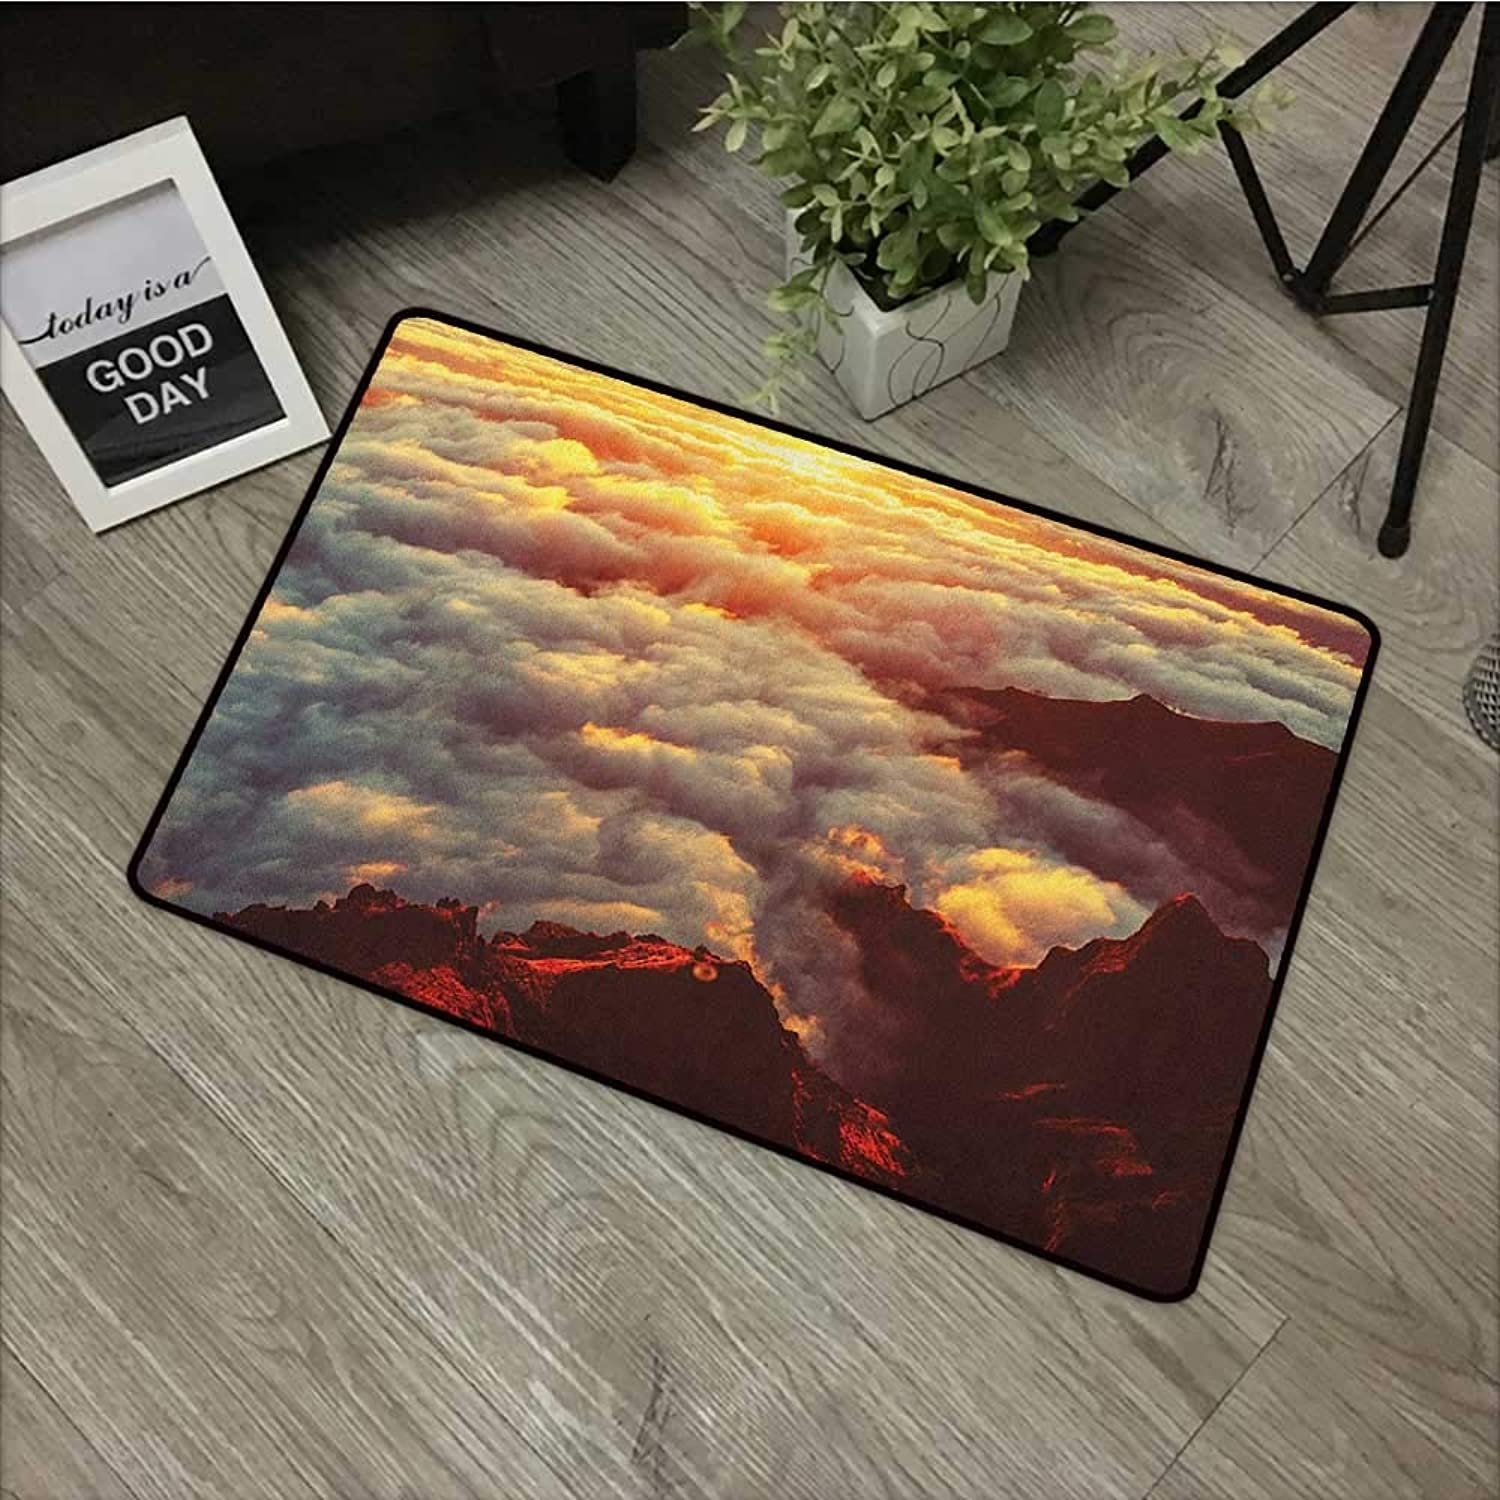 Floor mat W35 x L59 INCH Clouds,Sunset on the Hill Tops above the Clouds Unusual Extreme Morning Glory Print, orange White Brown Natural dye printing to predect your baby's skin Non-slip Door Mat Carp